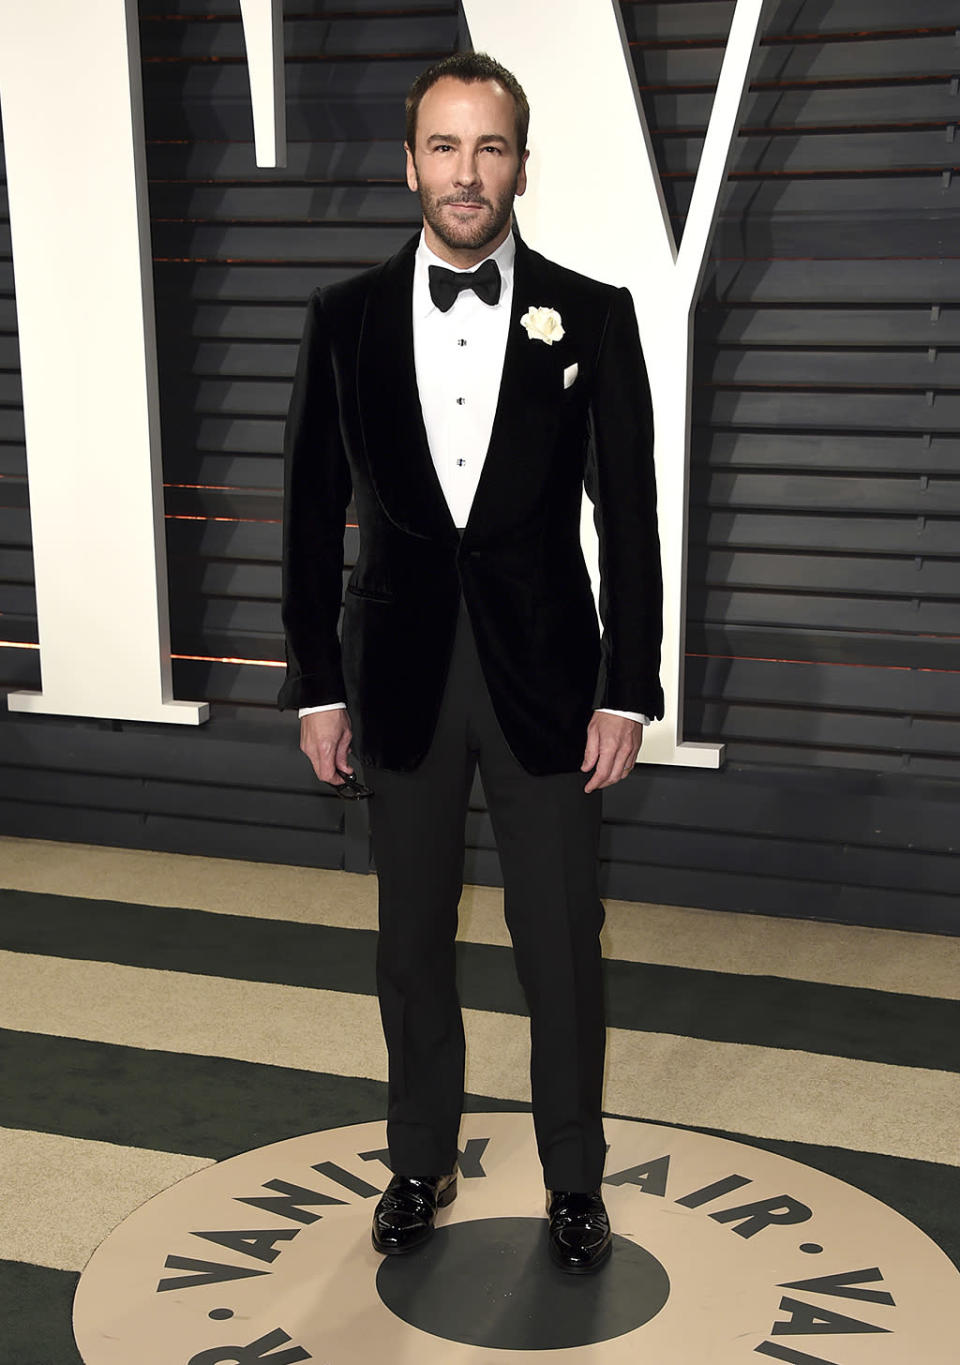 <p>Tom Ford arrives at the Vanity Fair Oscar Party on Sunday, Feb. 26, 2017, in Beverly Hills, Calif. (Photo by Evan Agostini/Invision/AP) </p>